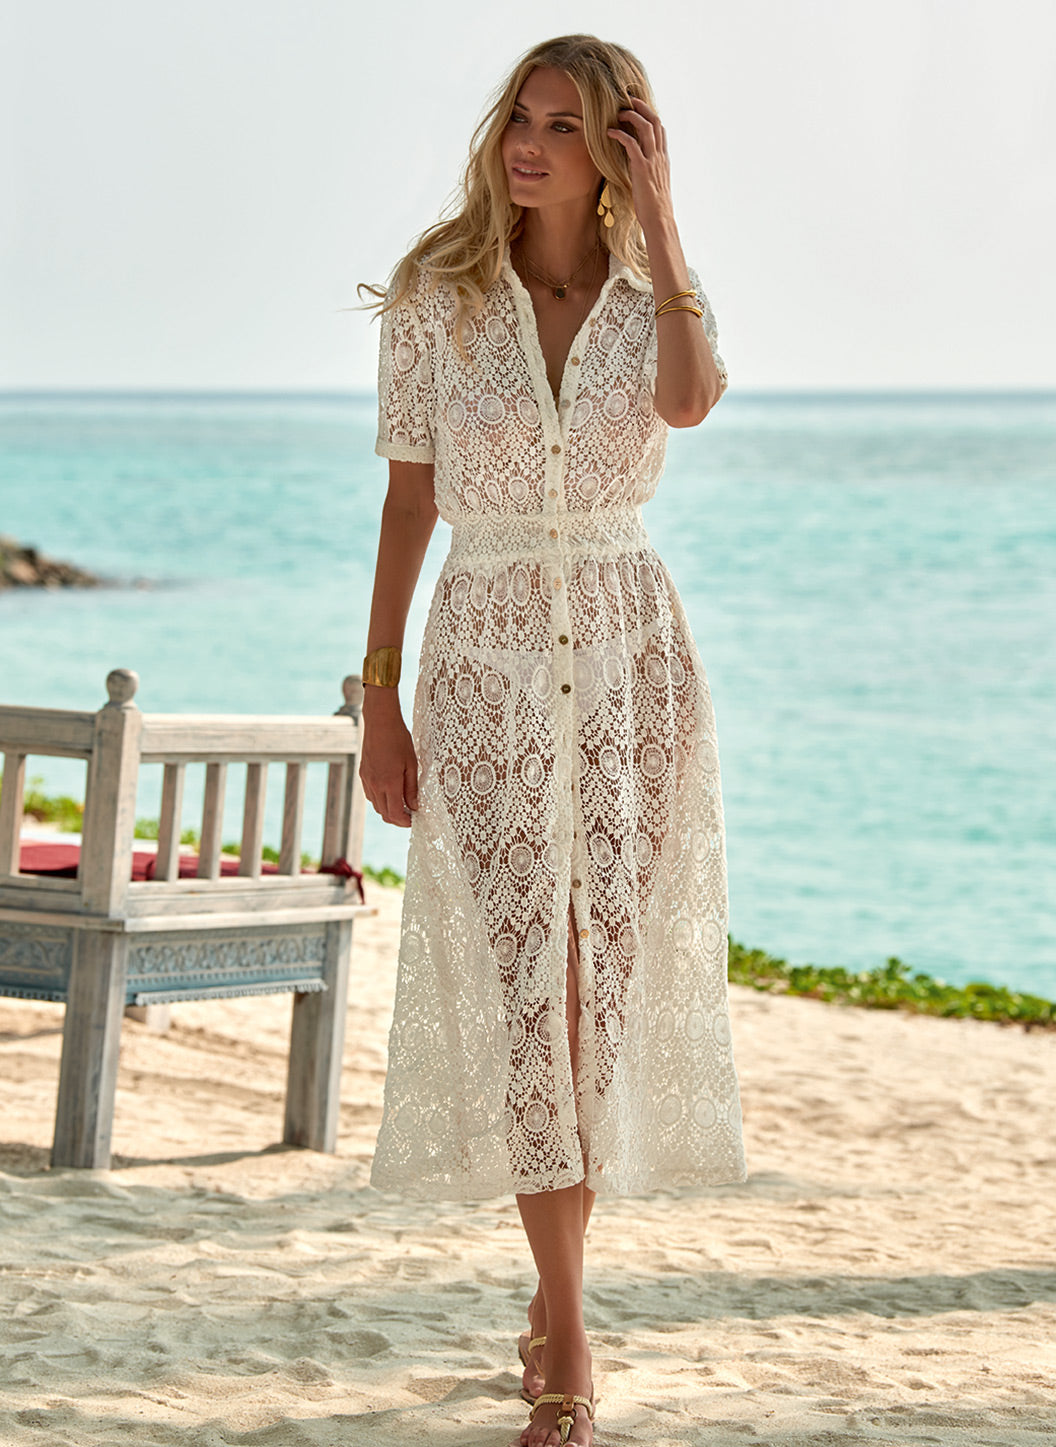 April Cream Lace Midi Button-Down Shirt Dress - Melissa Odabash Beach Dresses